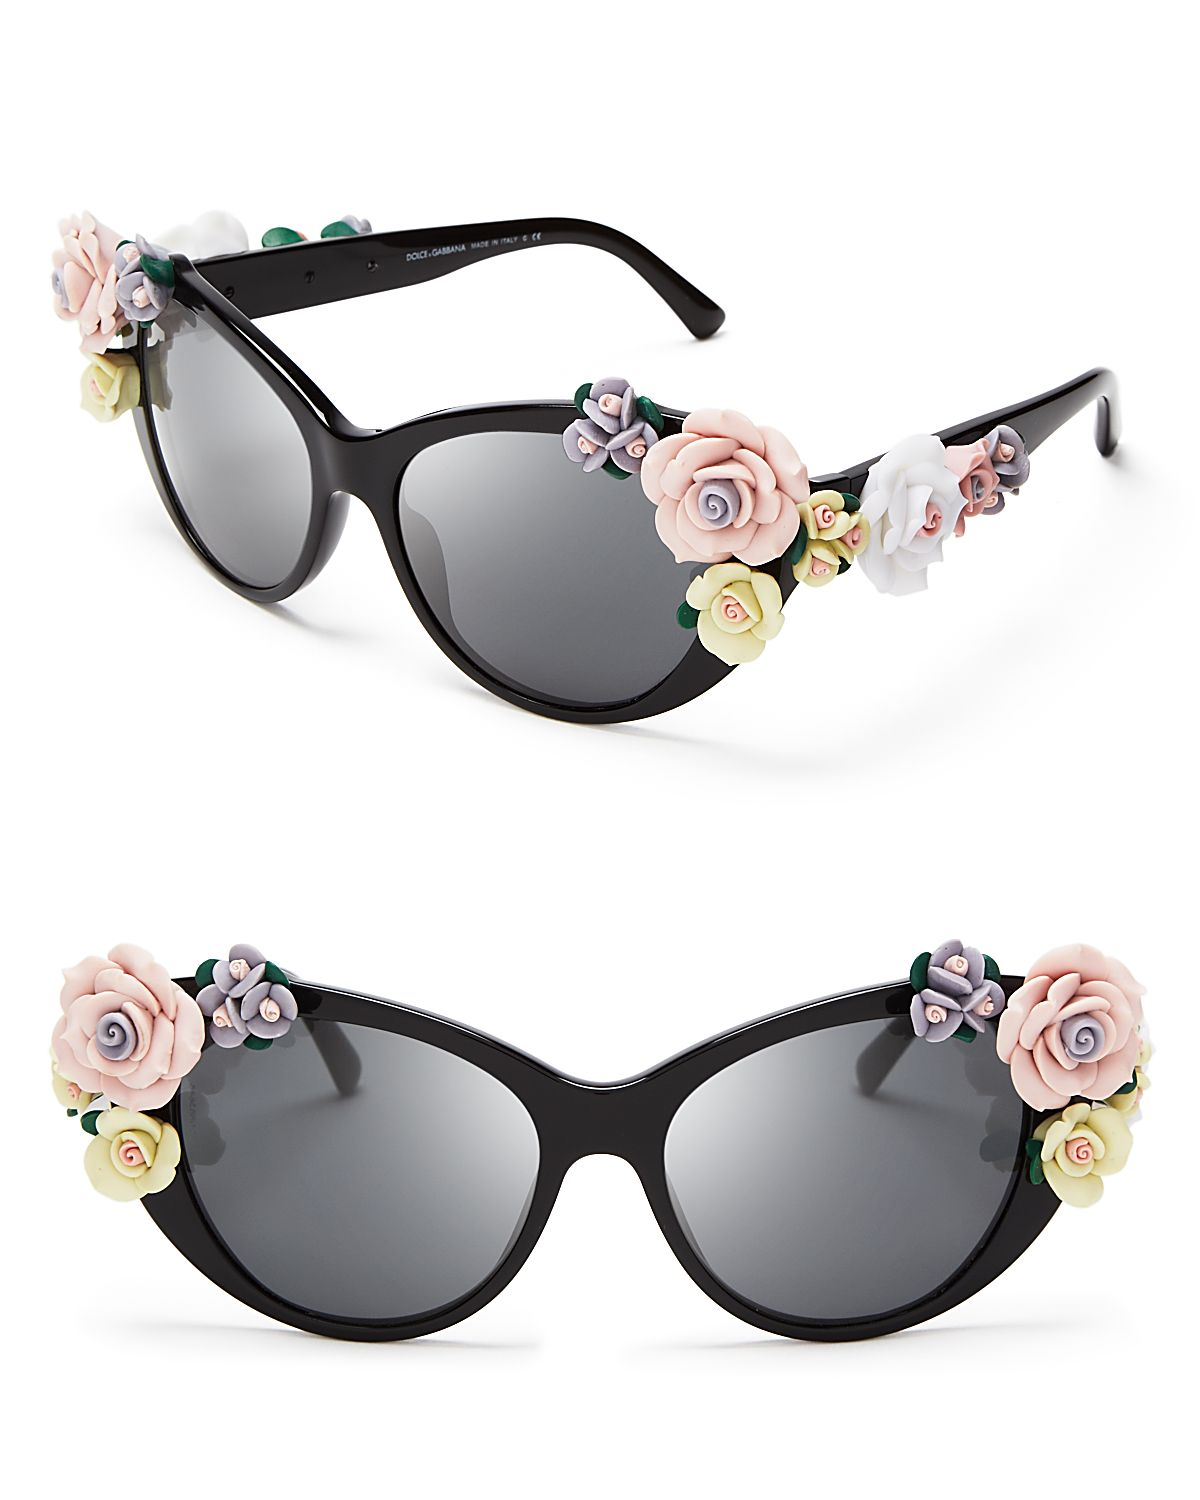 5092ee0319 Dolce And Gabbana Cat Eye Sunglasses 2013 « Heritage Malta